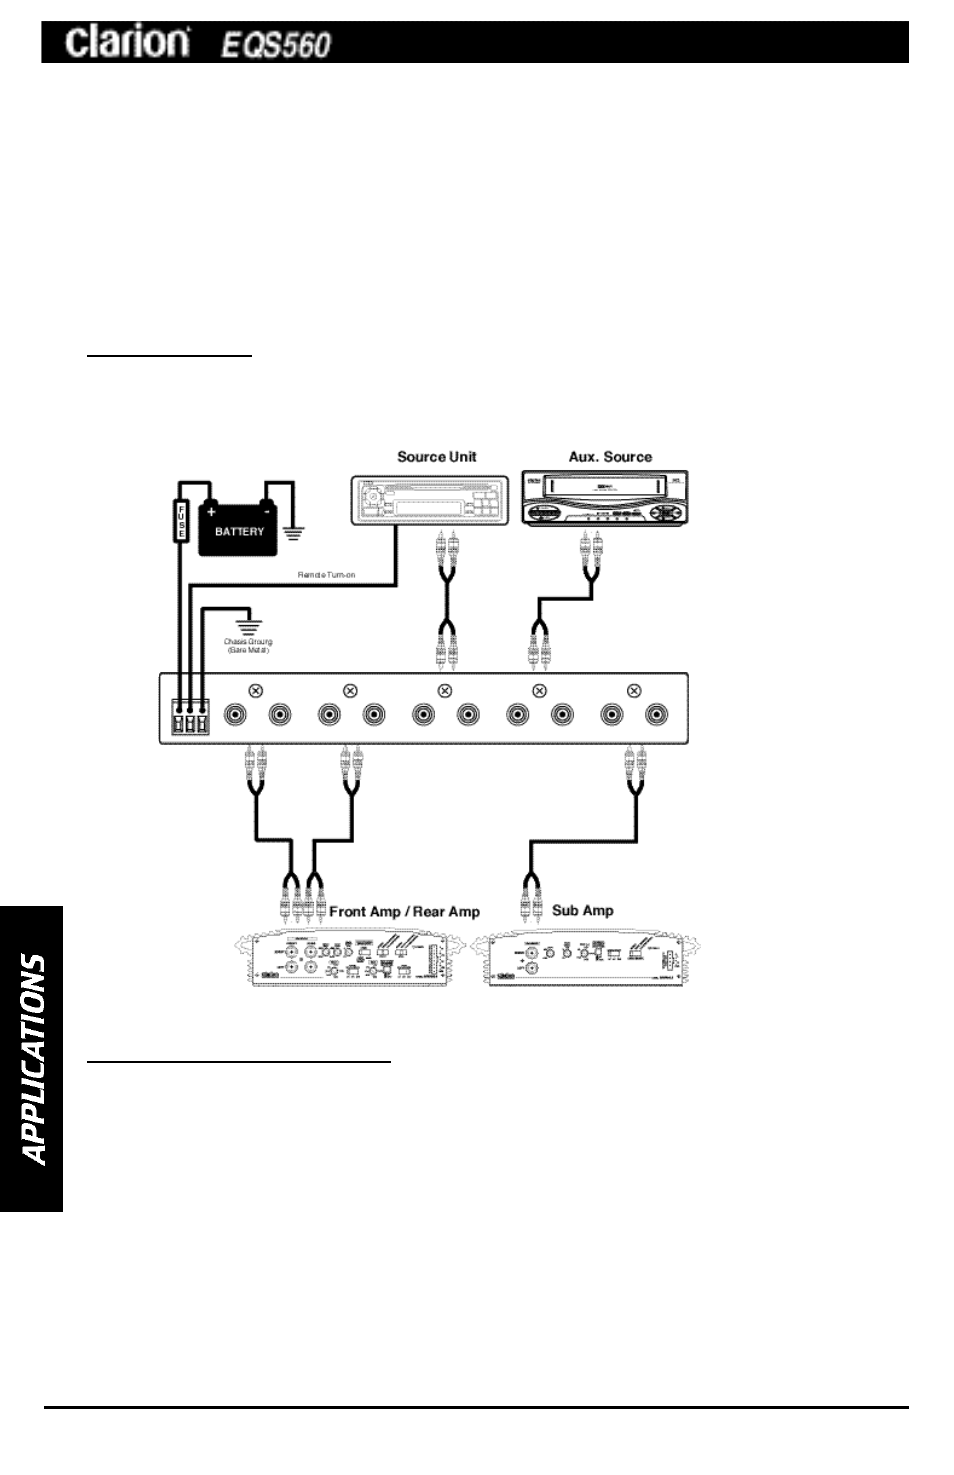 Clarion Eqs560 Wiring Diagram And Schematics Double Din Home